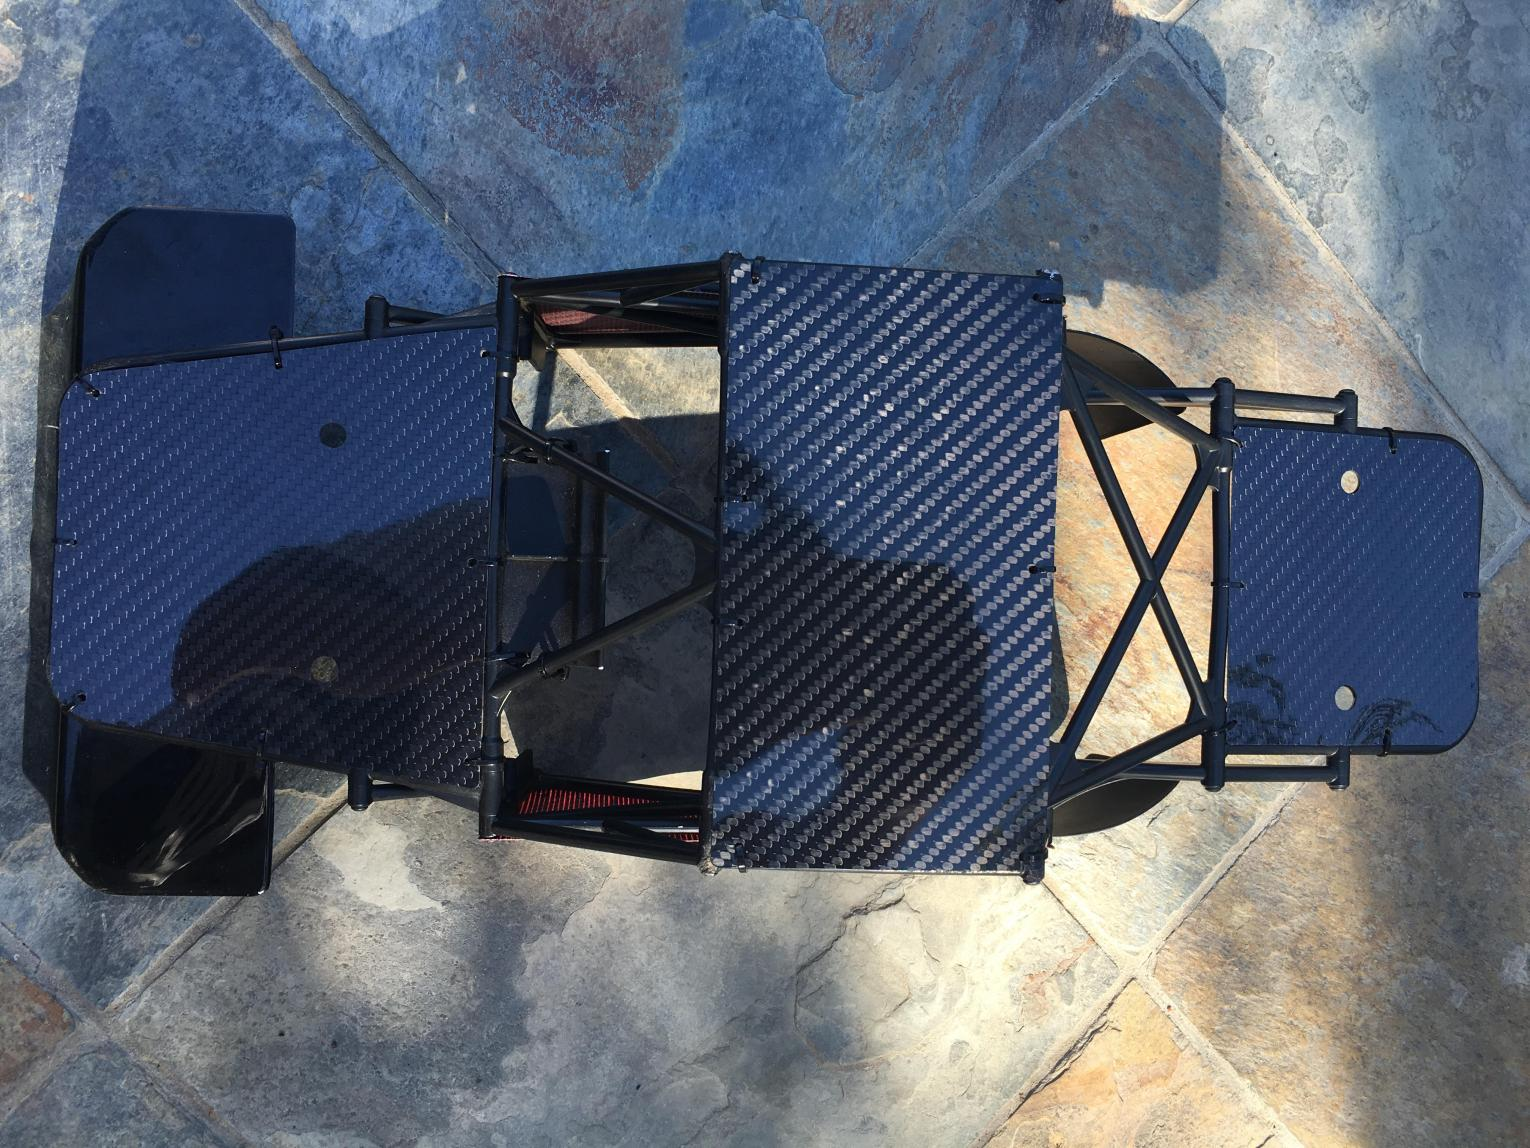 LST XXL SERVO GUARD | CARBON FIBER PANELS - R/C Tech Forums